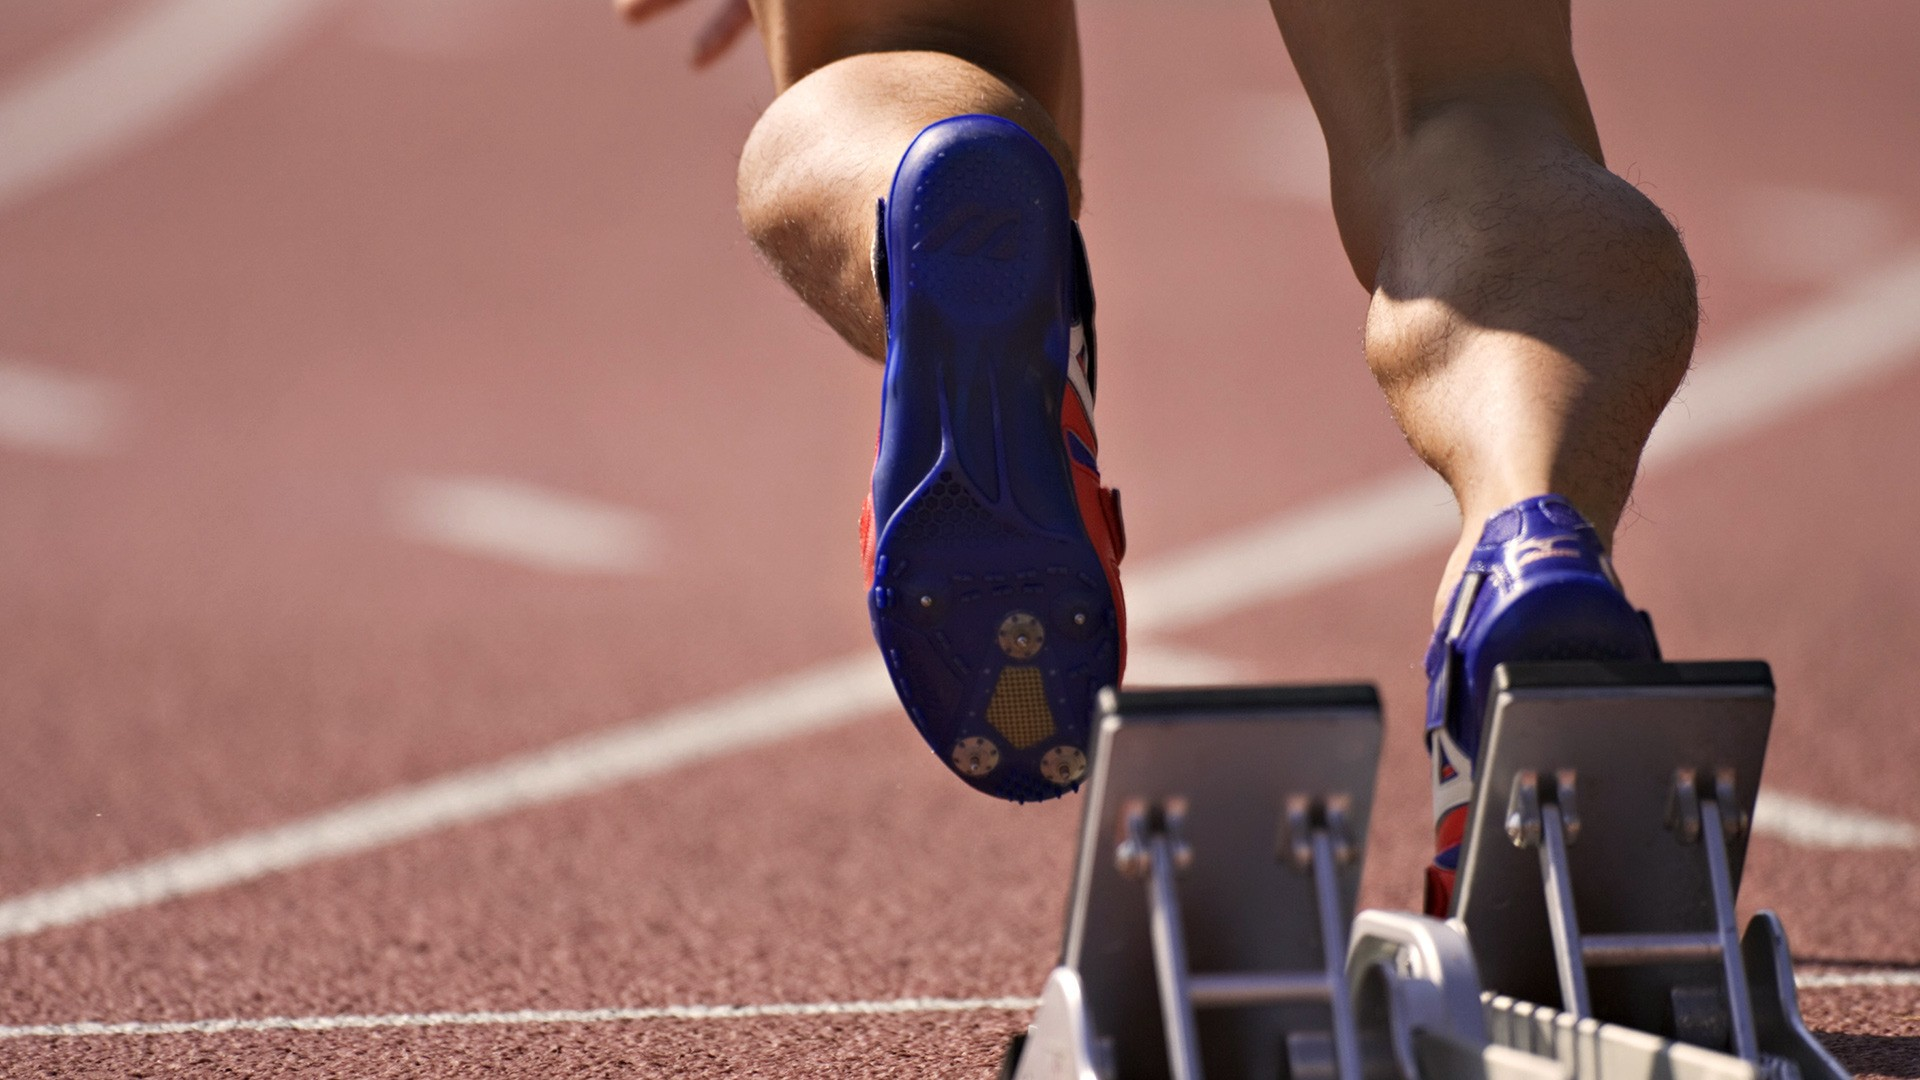 track-and-field-running-photo-wallpaper